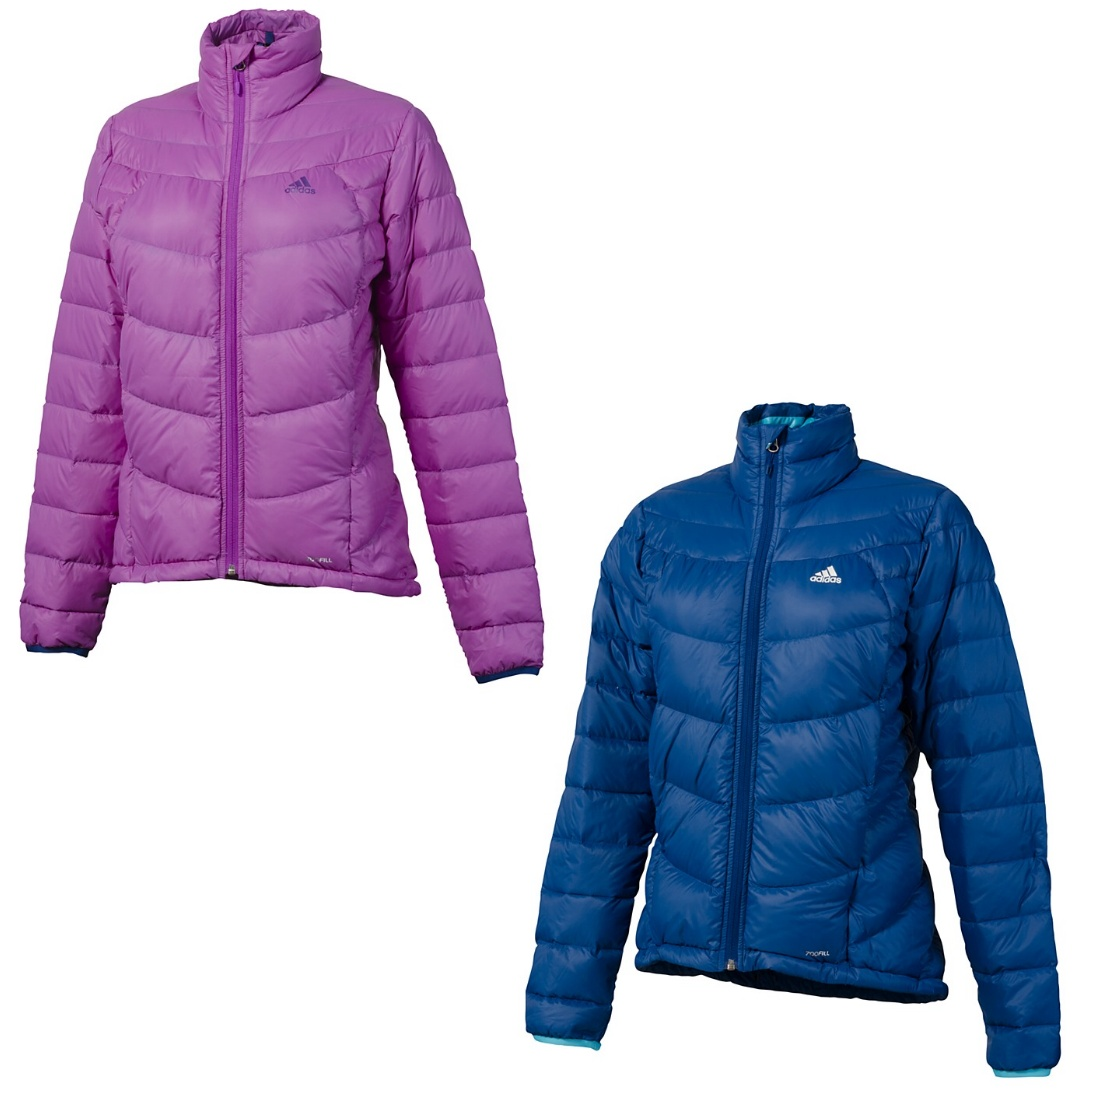 adidas hiking light down jacket jacke daunenjacke winterjacke damen blau lila ebay. Black Bedroom Furniture Sets. Home Design Ideas